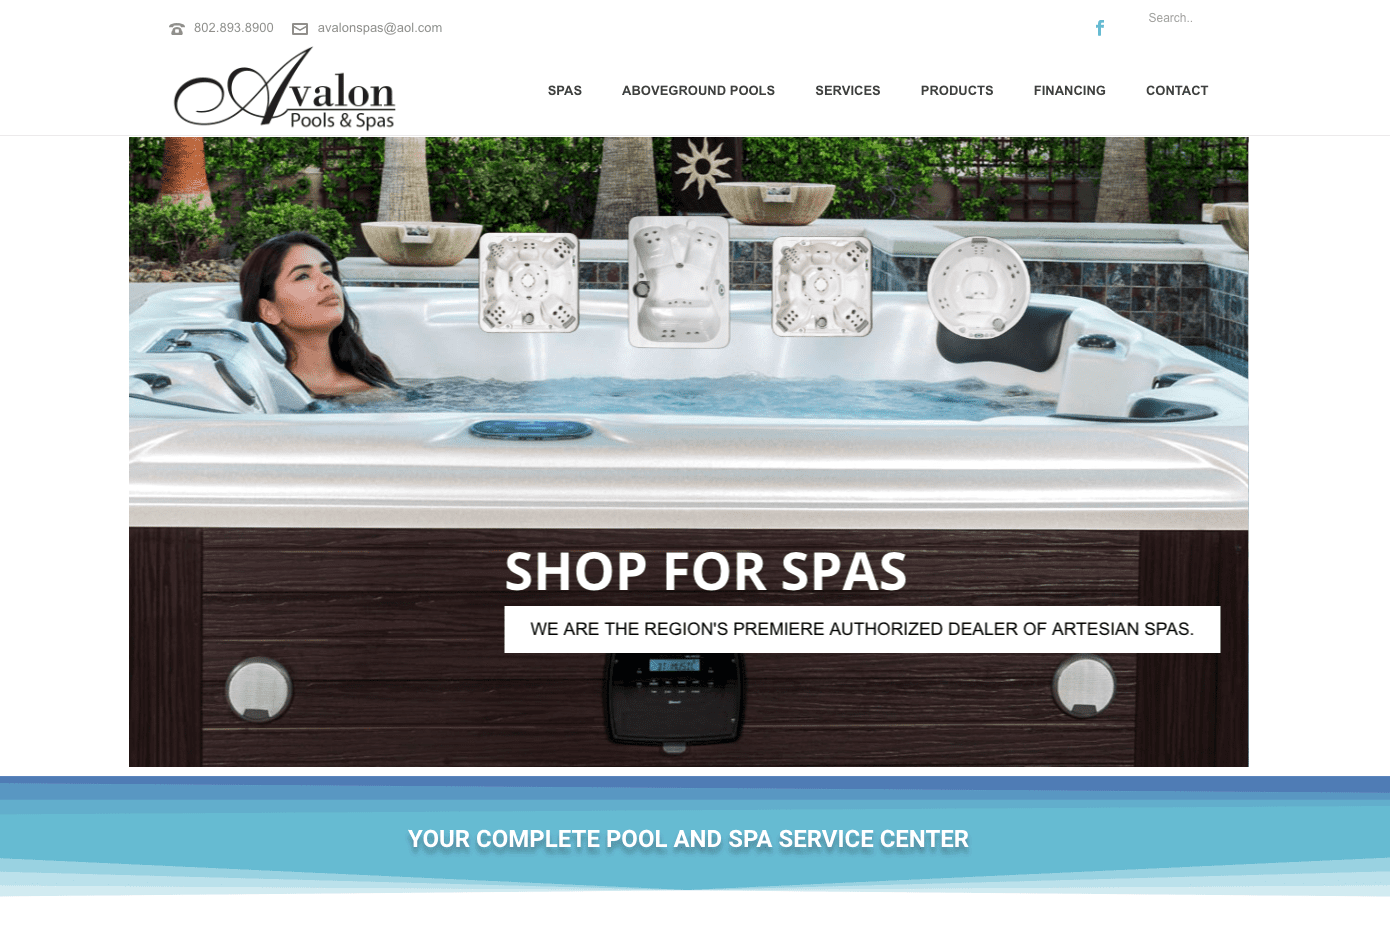 Avalon Pools and Spas